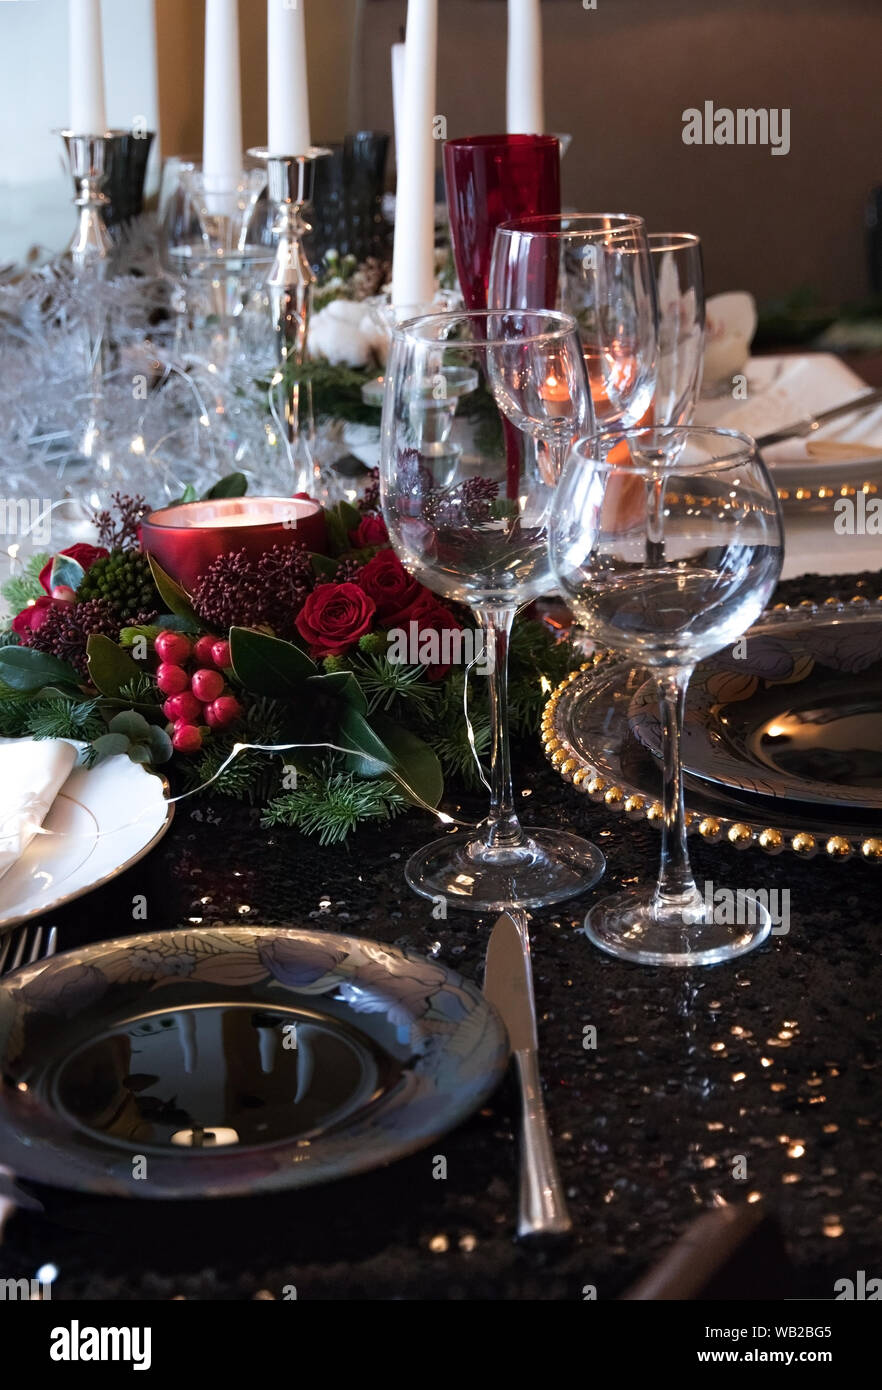 Christmas Composition Of Fir Branches Berries And Candles On The Table Festive Table Setting For Christmas Dinner On A Shiny Black Tablecloth And Ex Stock Photo Alamy